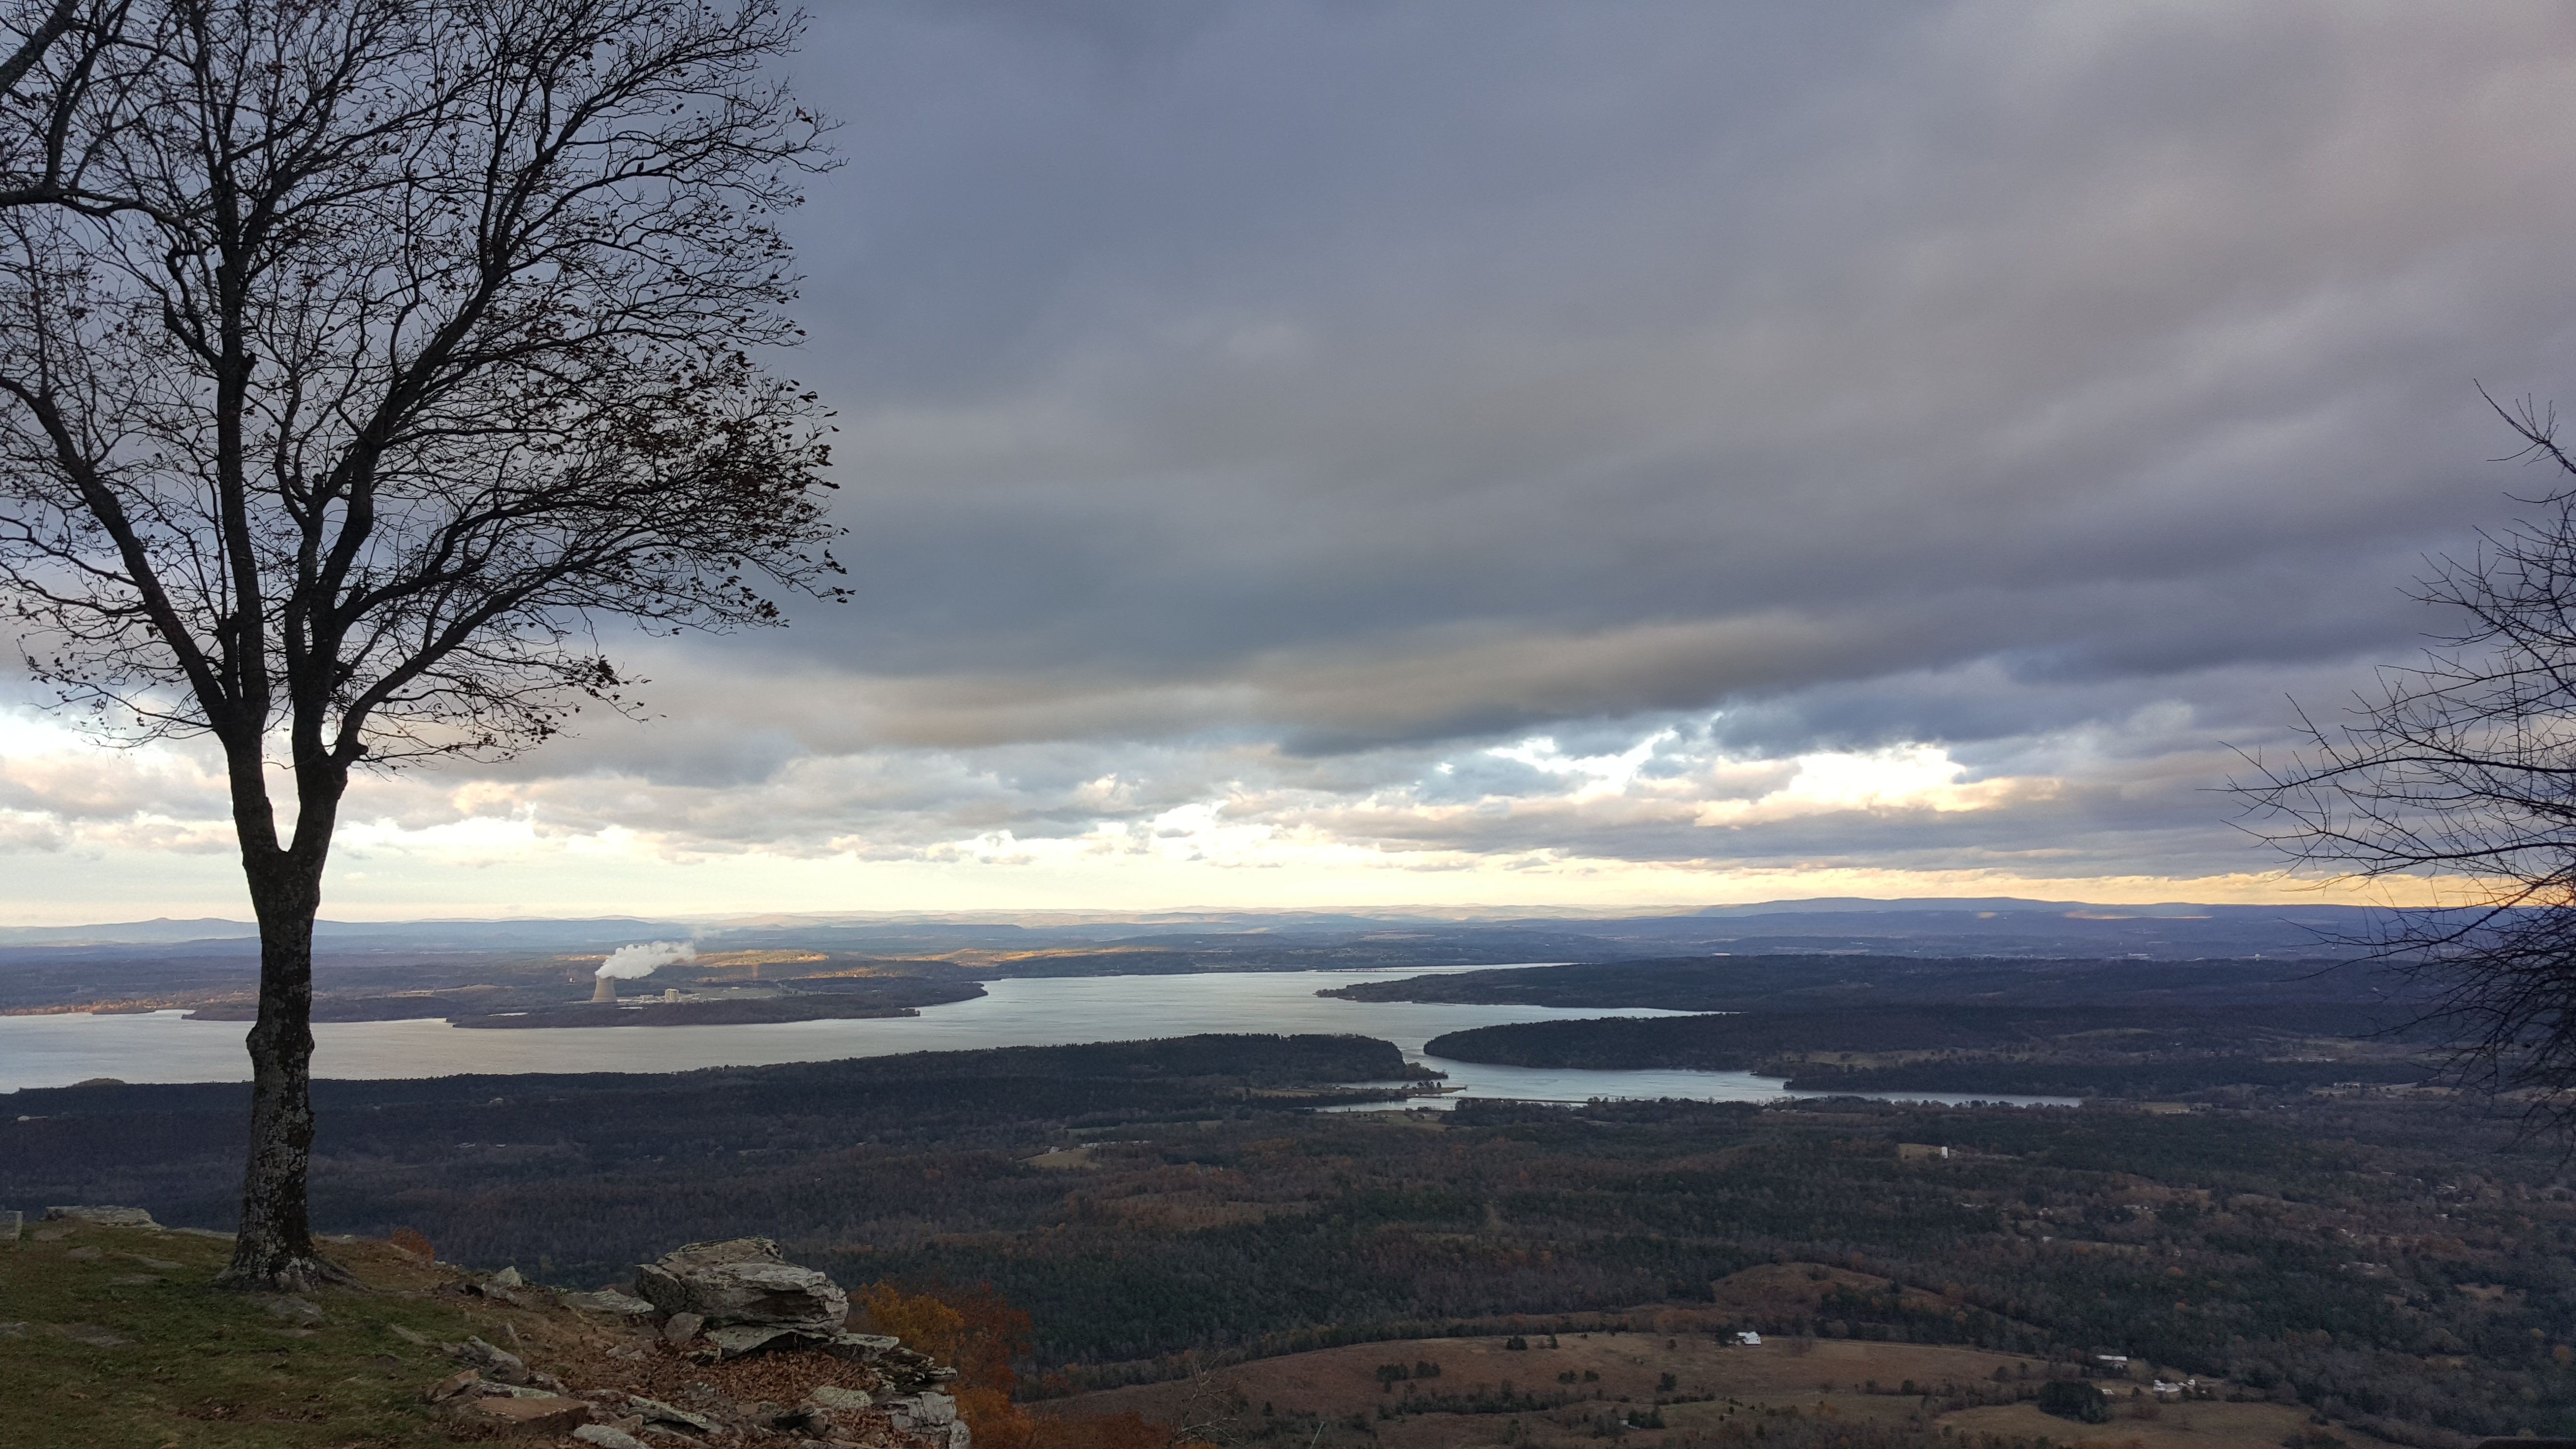 A view of landscape from the top of Mount Nebo, with the Arkansas River in the distance. Photo Courtesy of Arkansas Department of Parks, Heritage, and Tourism.